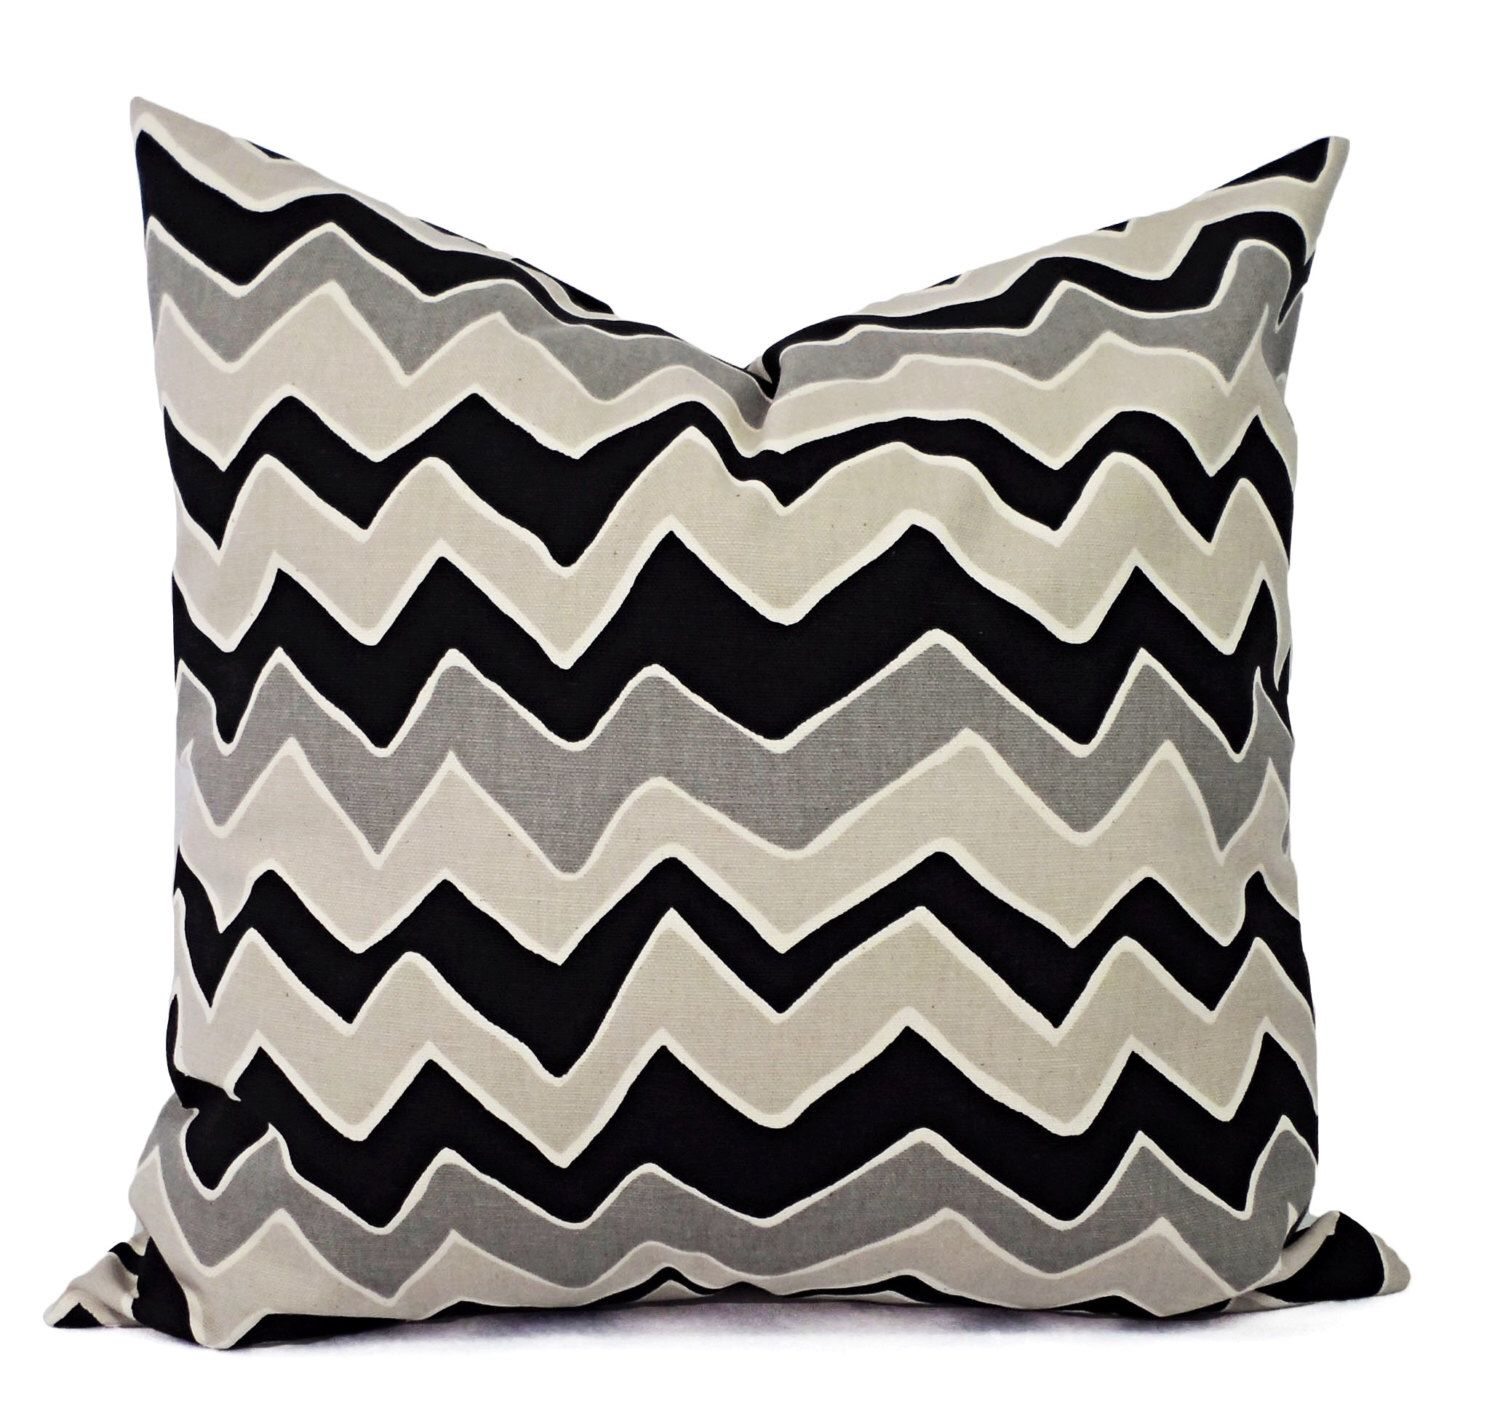 Black Pillow Covers - Two Black Chevron Decorative Pillows - Zigzag Pillow Cover - Accent Pillow - Black Grey and Cream Pillows by CastawayCoveDecor on Etsy https://www.etsy.com/listing/217919187/black-pillow-covers-two-black-chevron